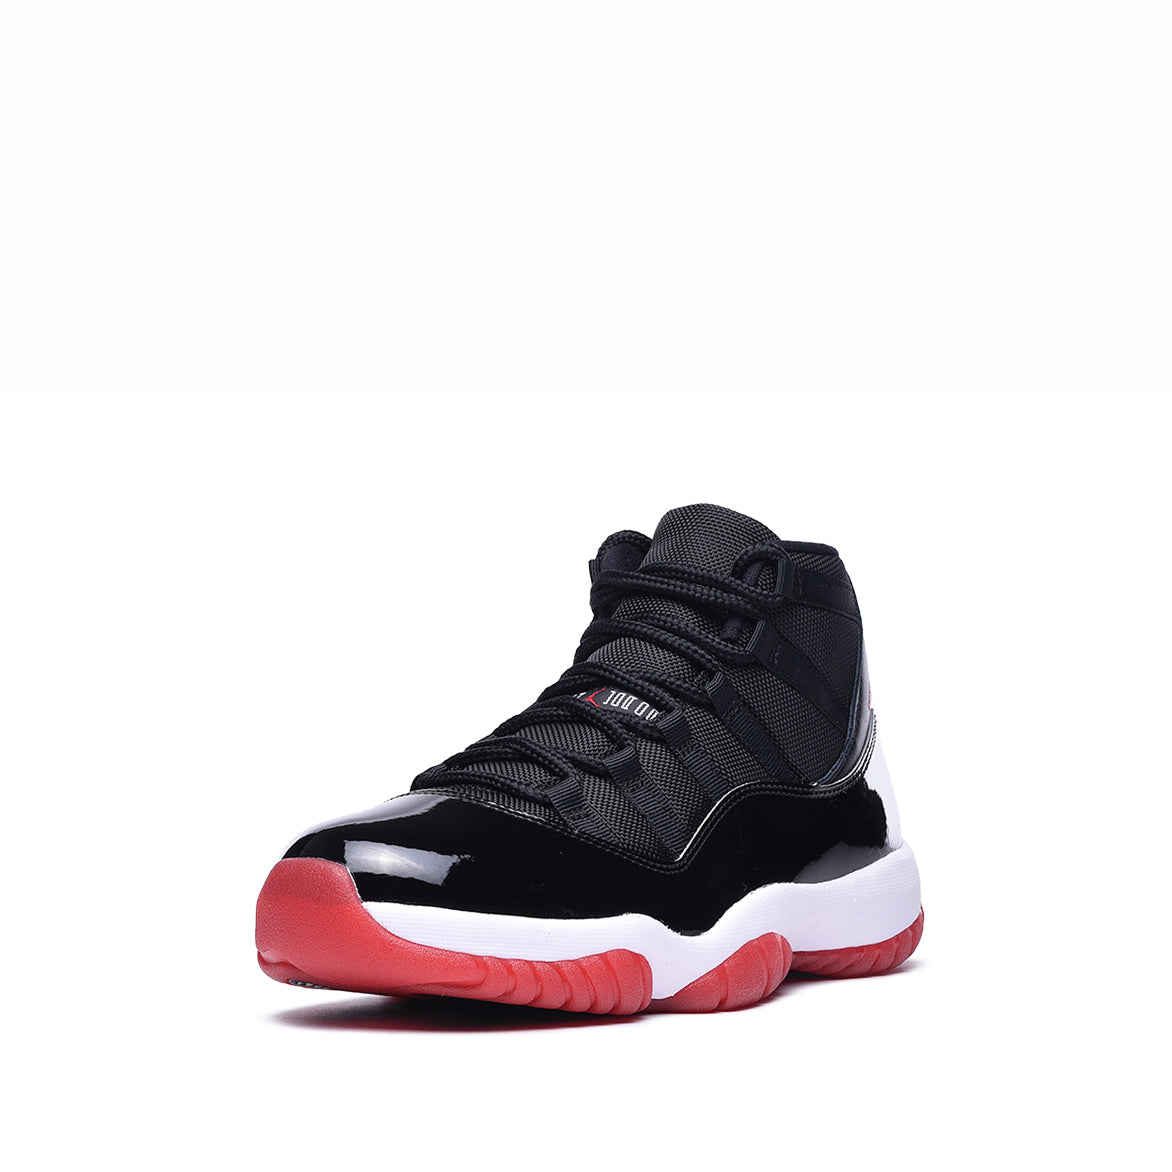 "AIR JORDAN 11 RETRO (GS) ""BRED"""